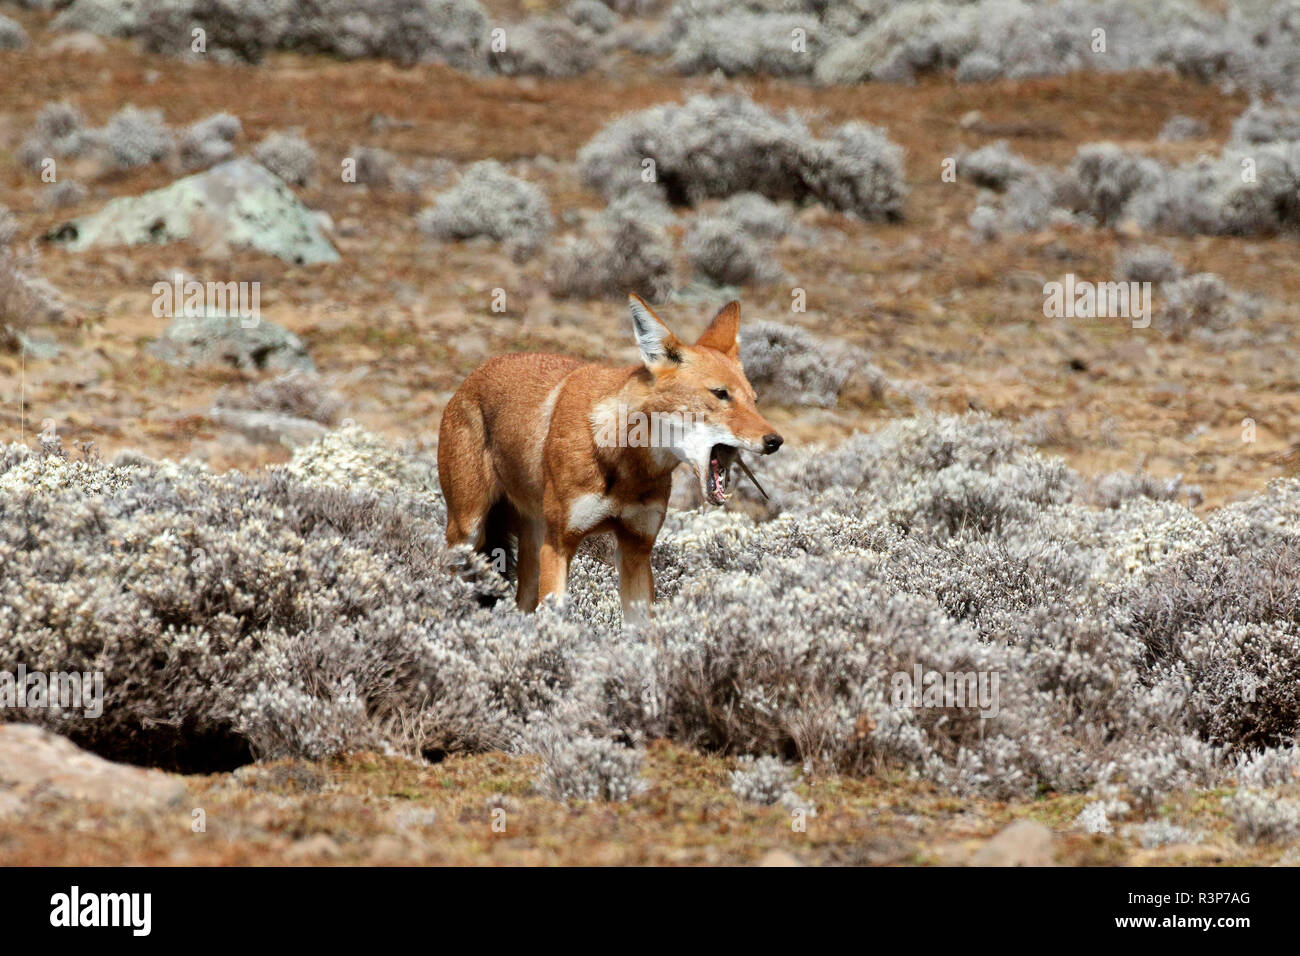 Simian jackal (Canis simensis) eating a mole rat among Cape Gold, Bale Mountains, Ethiopia - Stock Image